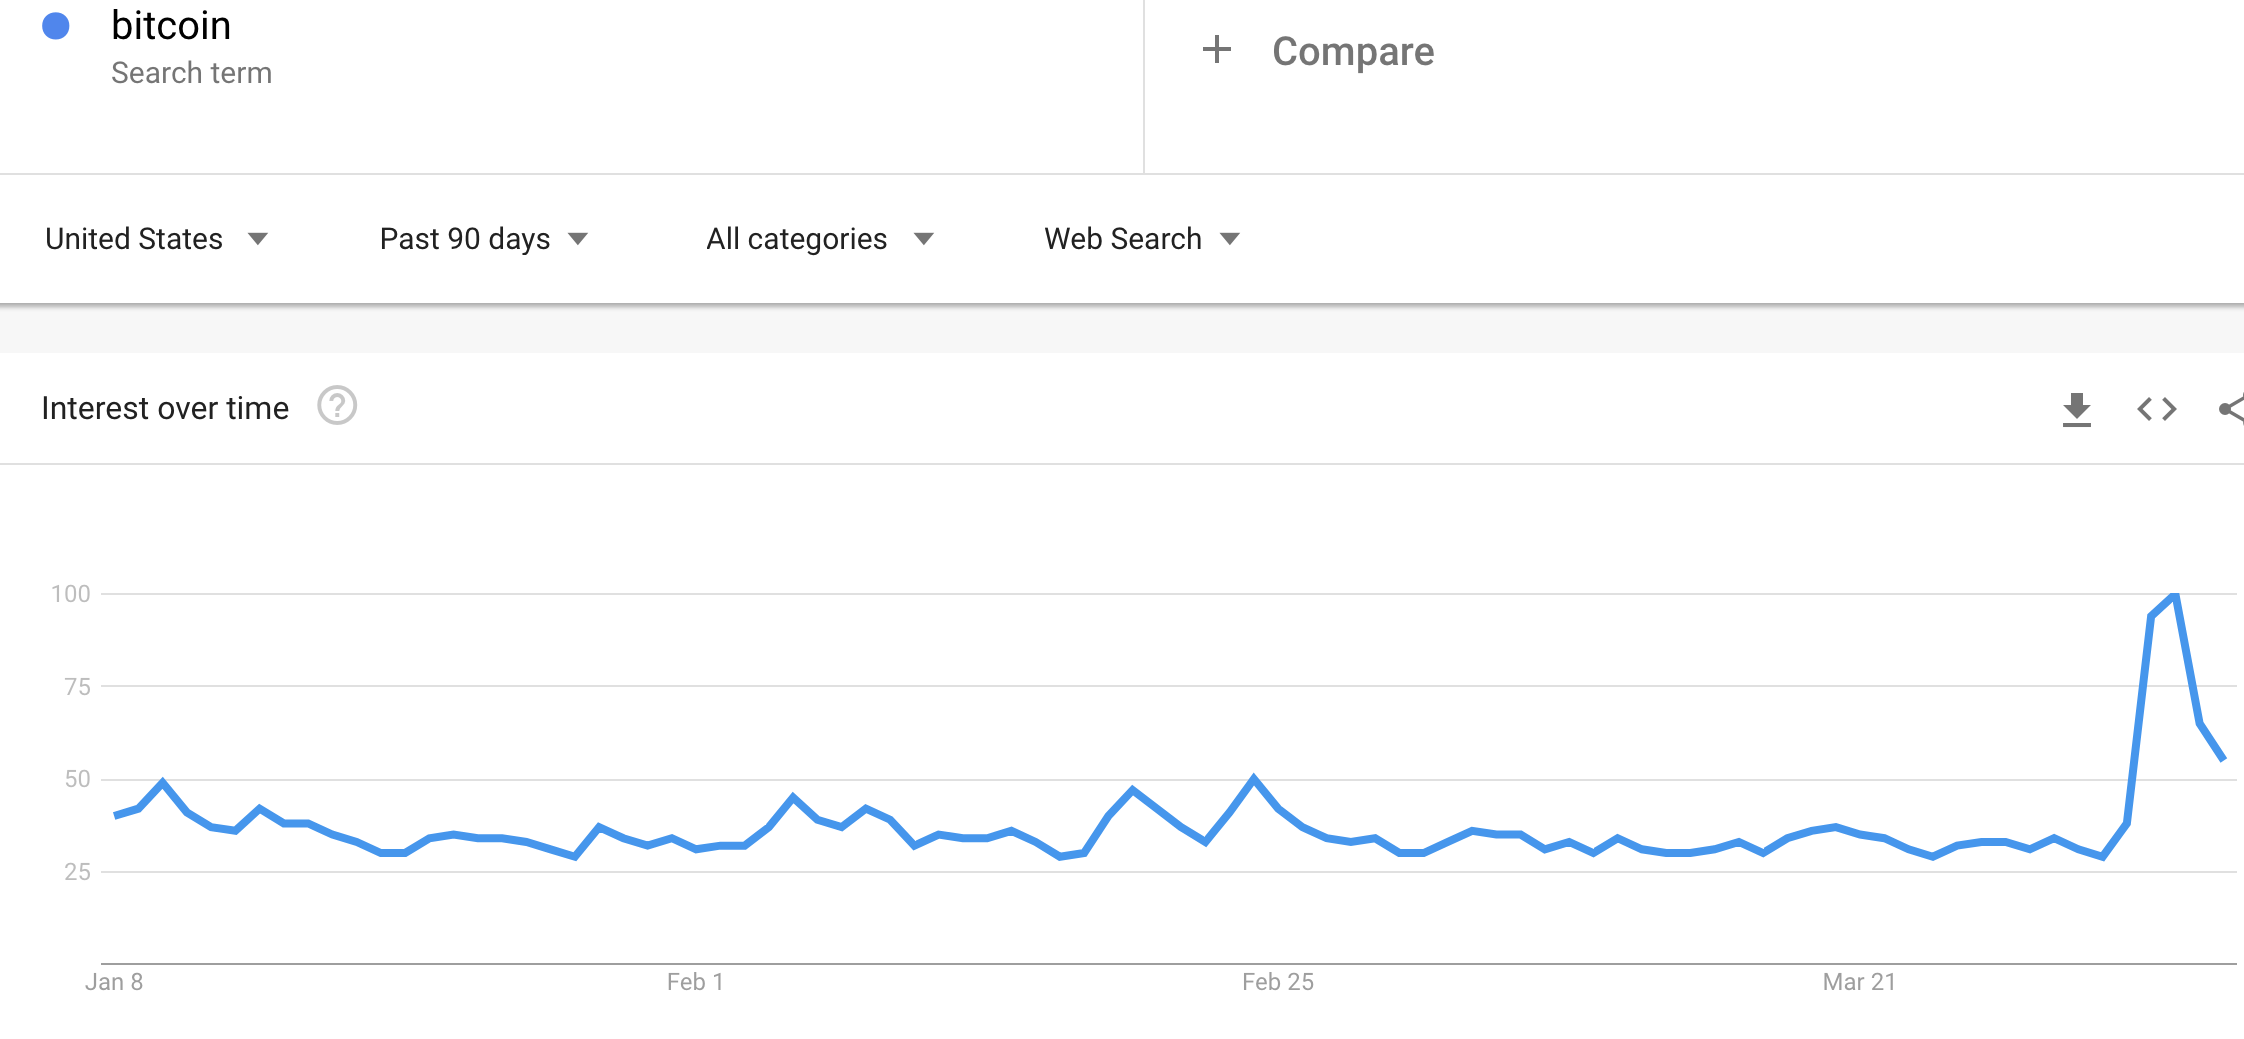 "Google search interest in ""Bitcoin"" spiked on April 2 in immediate response to the sudden burst in Bitcoin price action. These data are for the U.S. over the last 90 days."